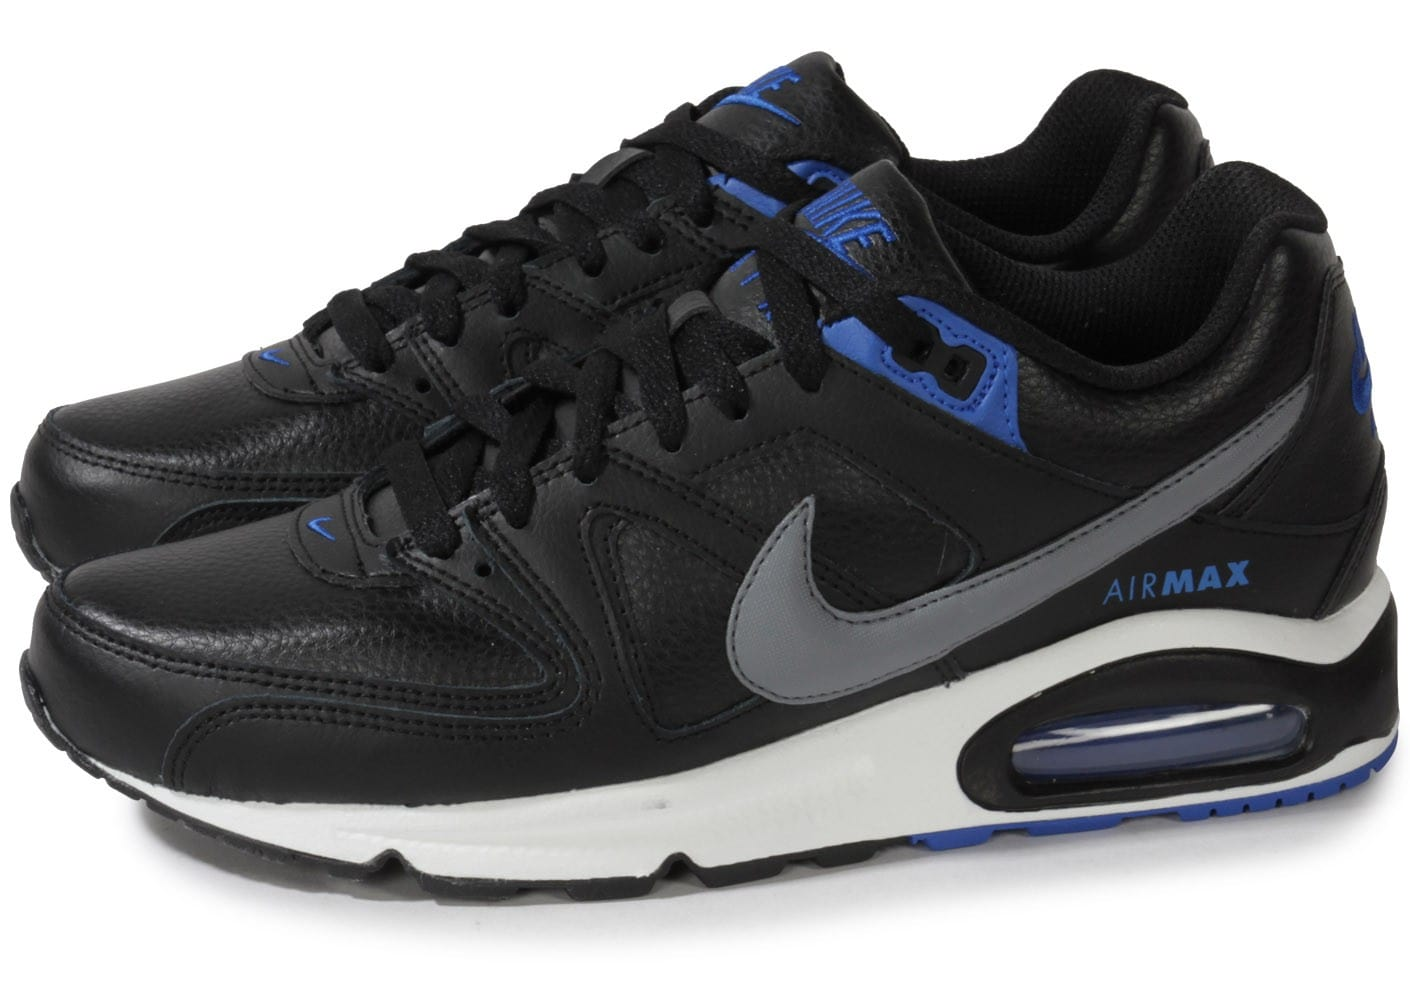 grossiste a7723 32030 Nike Air Max Command Cuir Noire - Chaussures Baskets homme ...